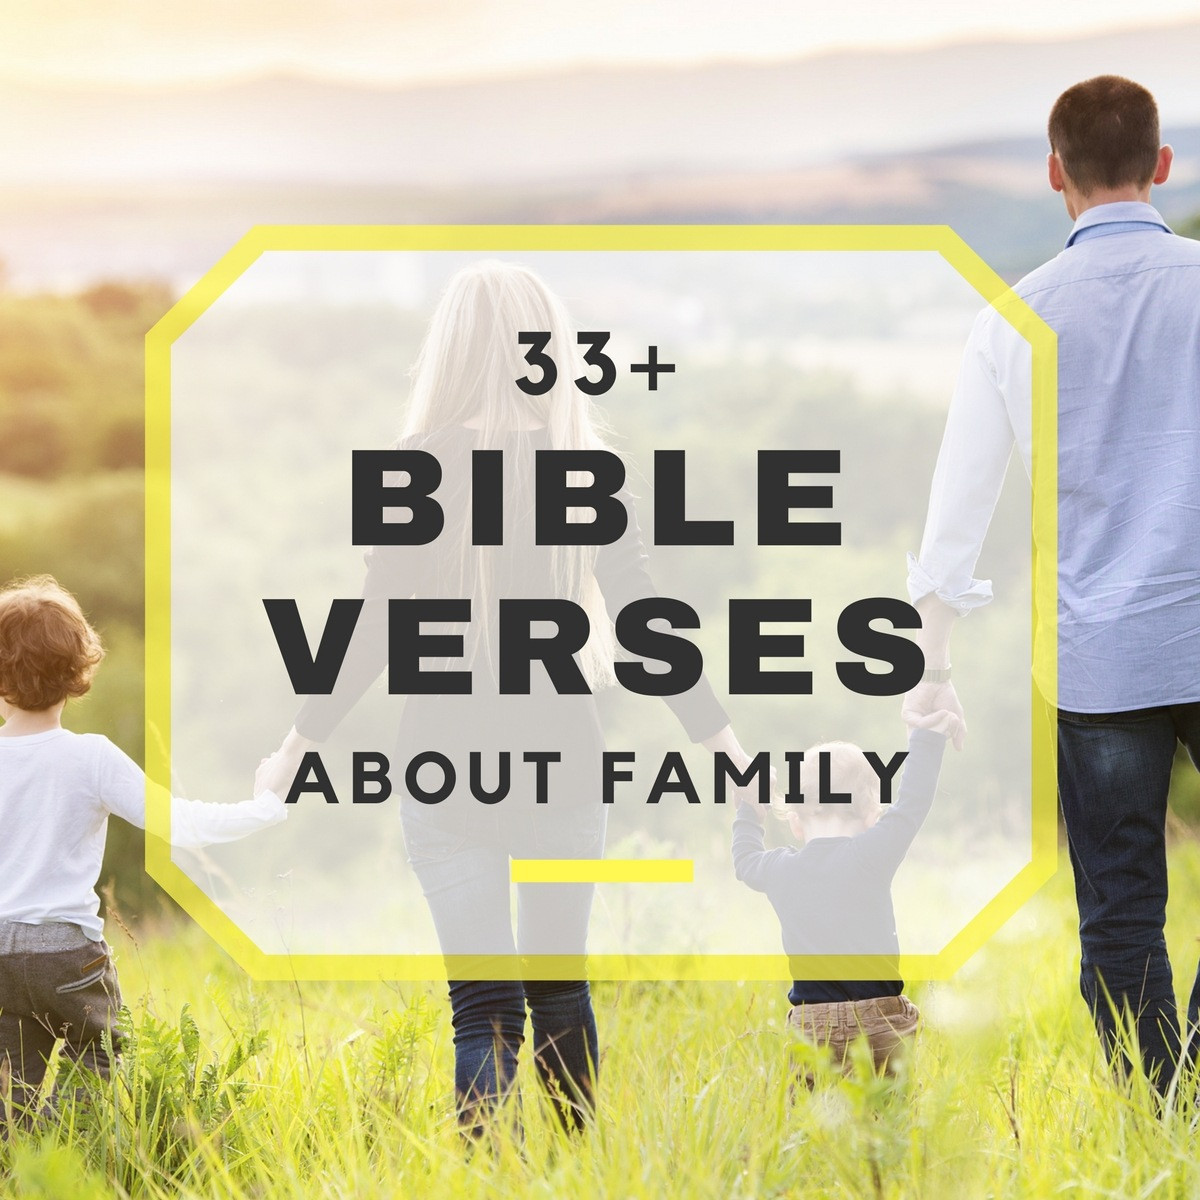 Family Bible Quotes  33 Bible Verses About Family Bible Scriptures About